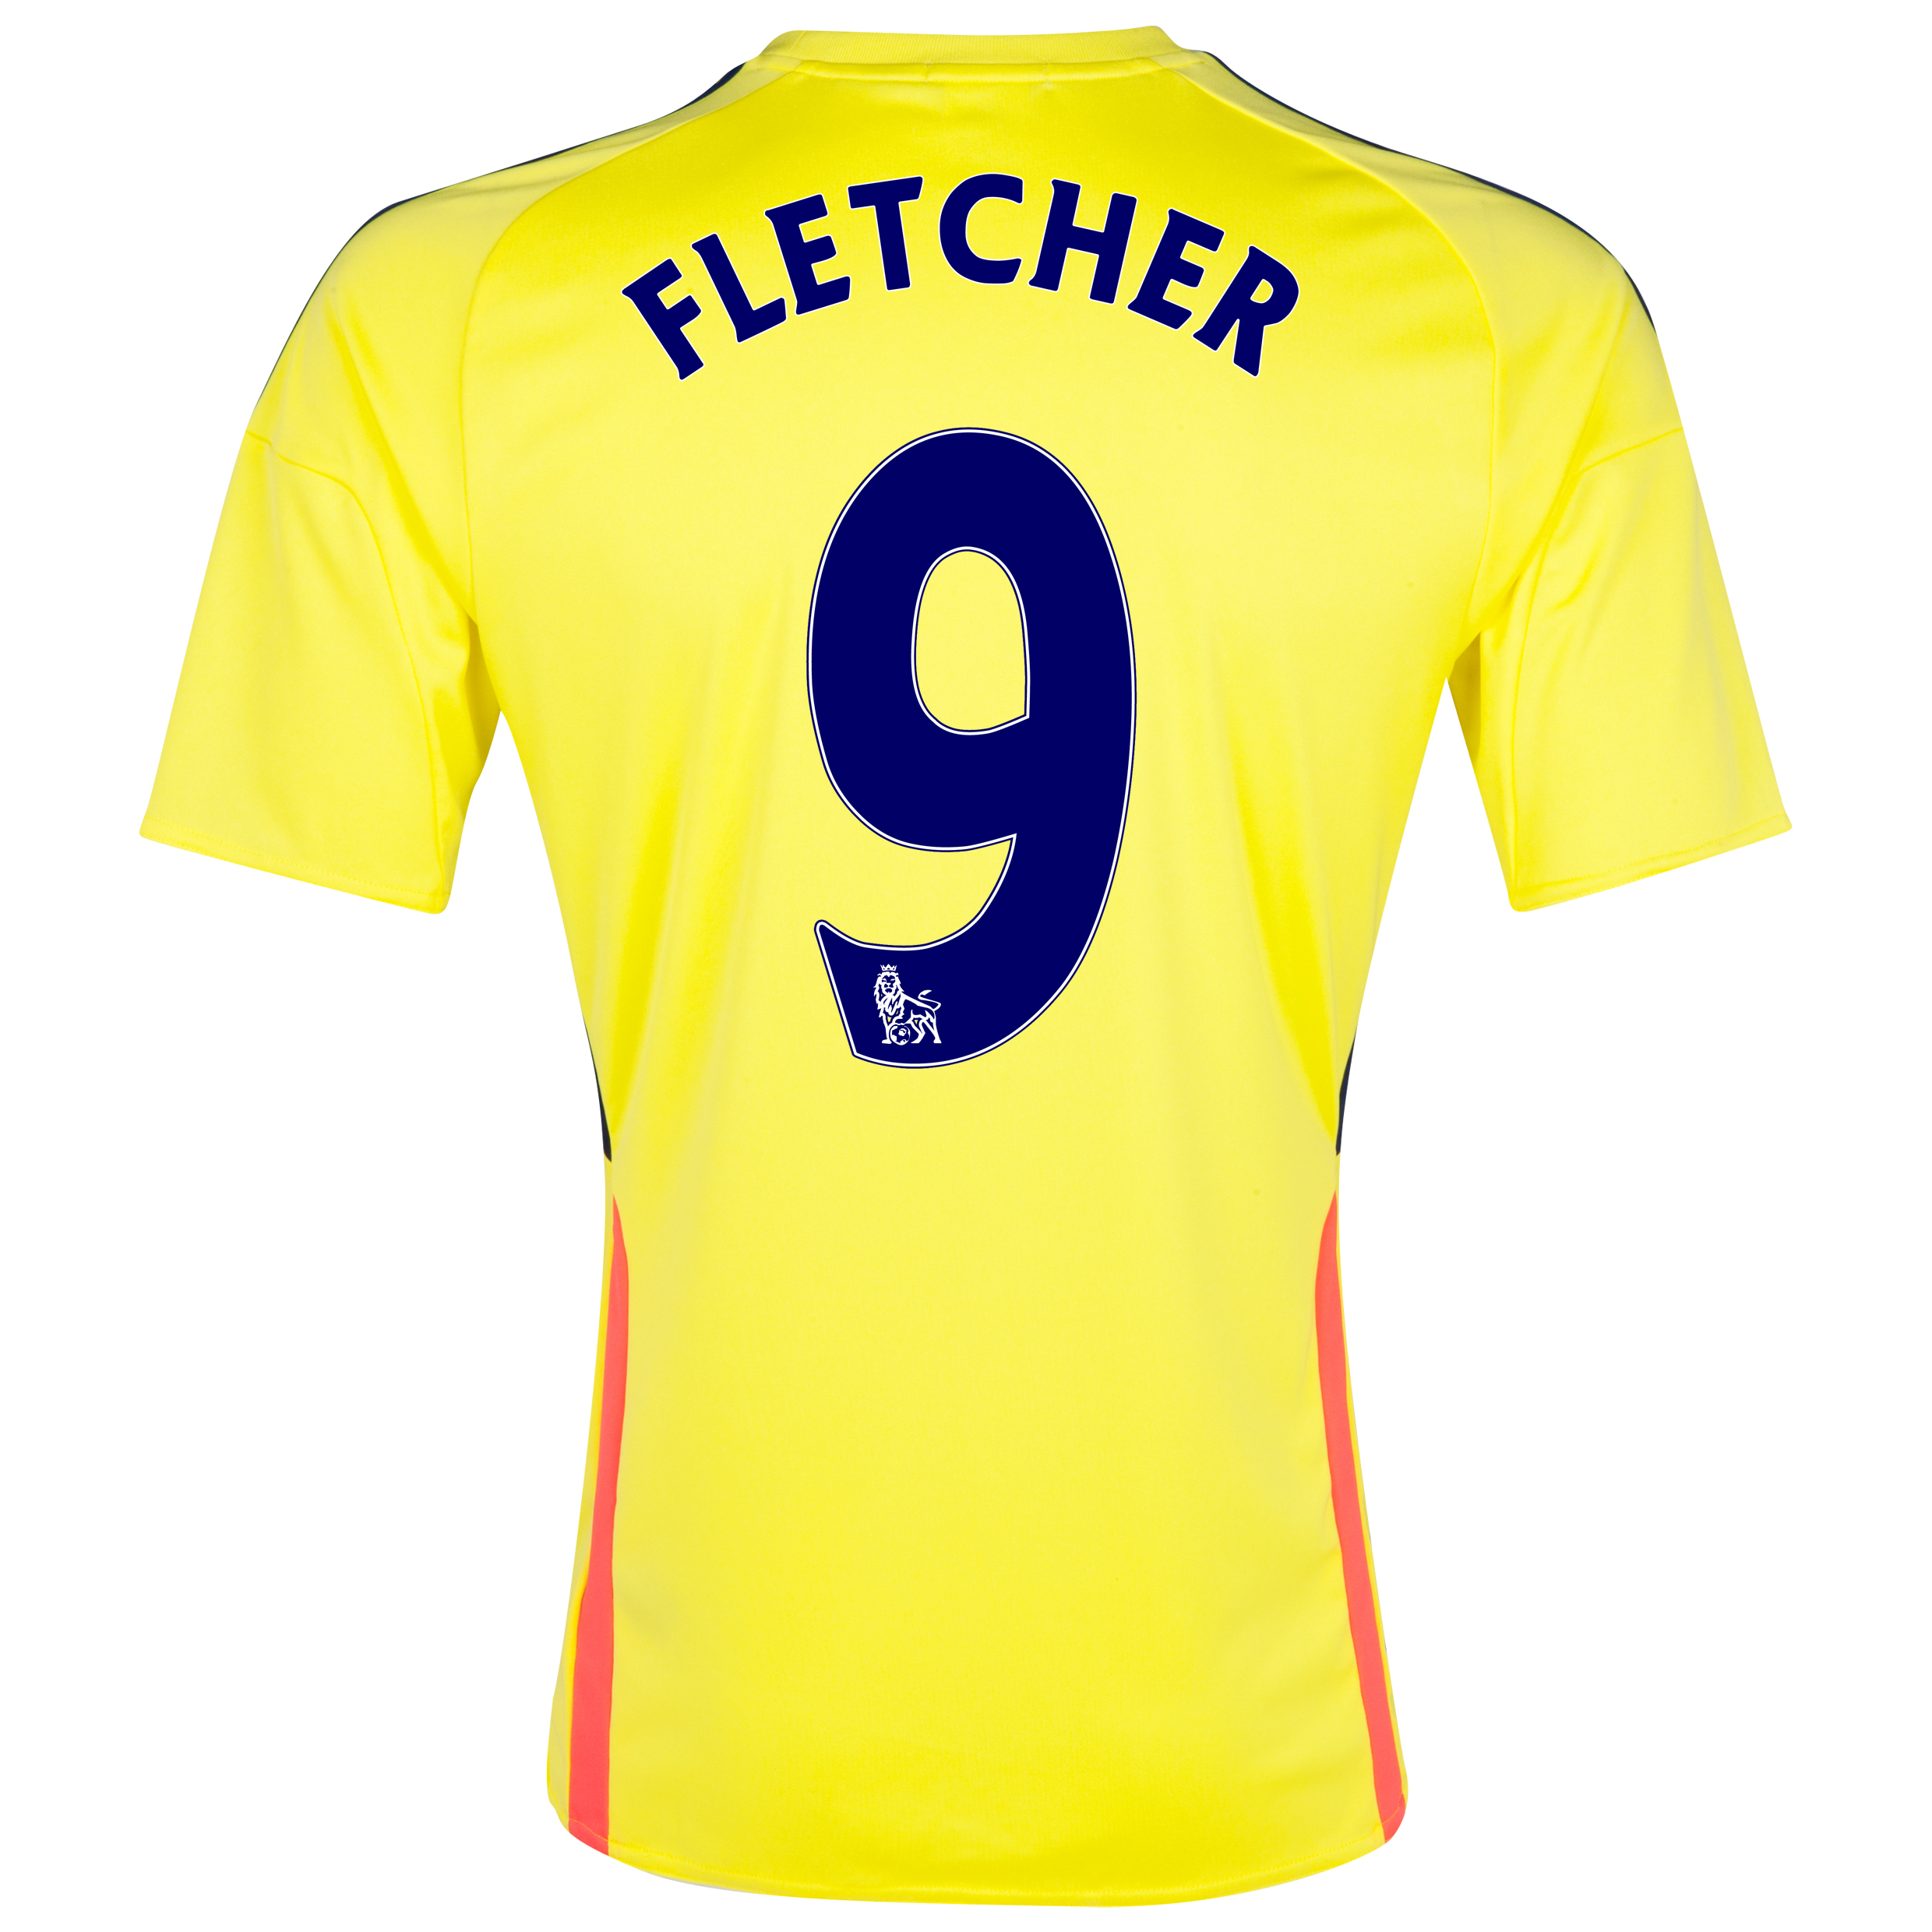 Sunderland Away Shirt 2013/14 with Fletcher 9 printing